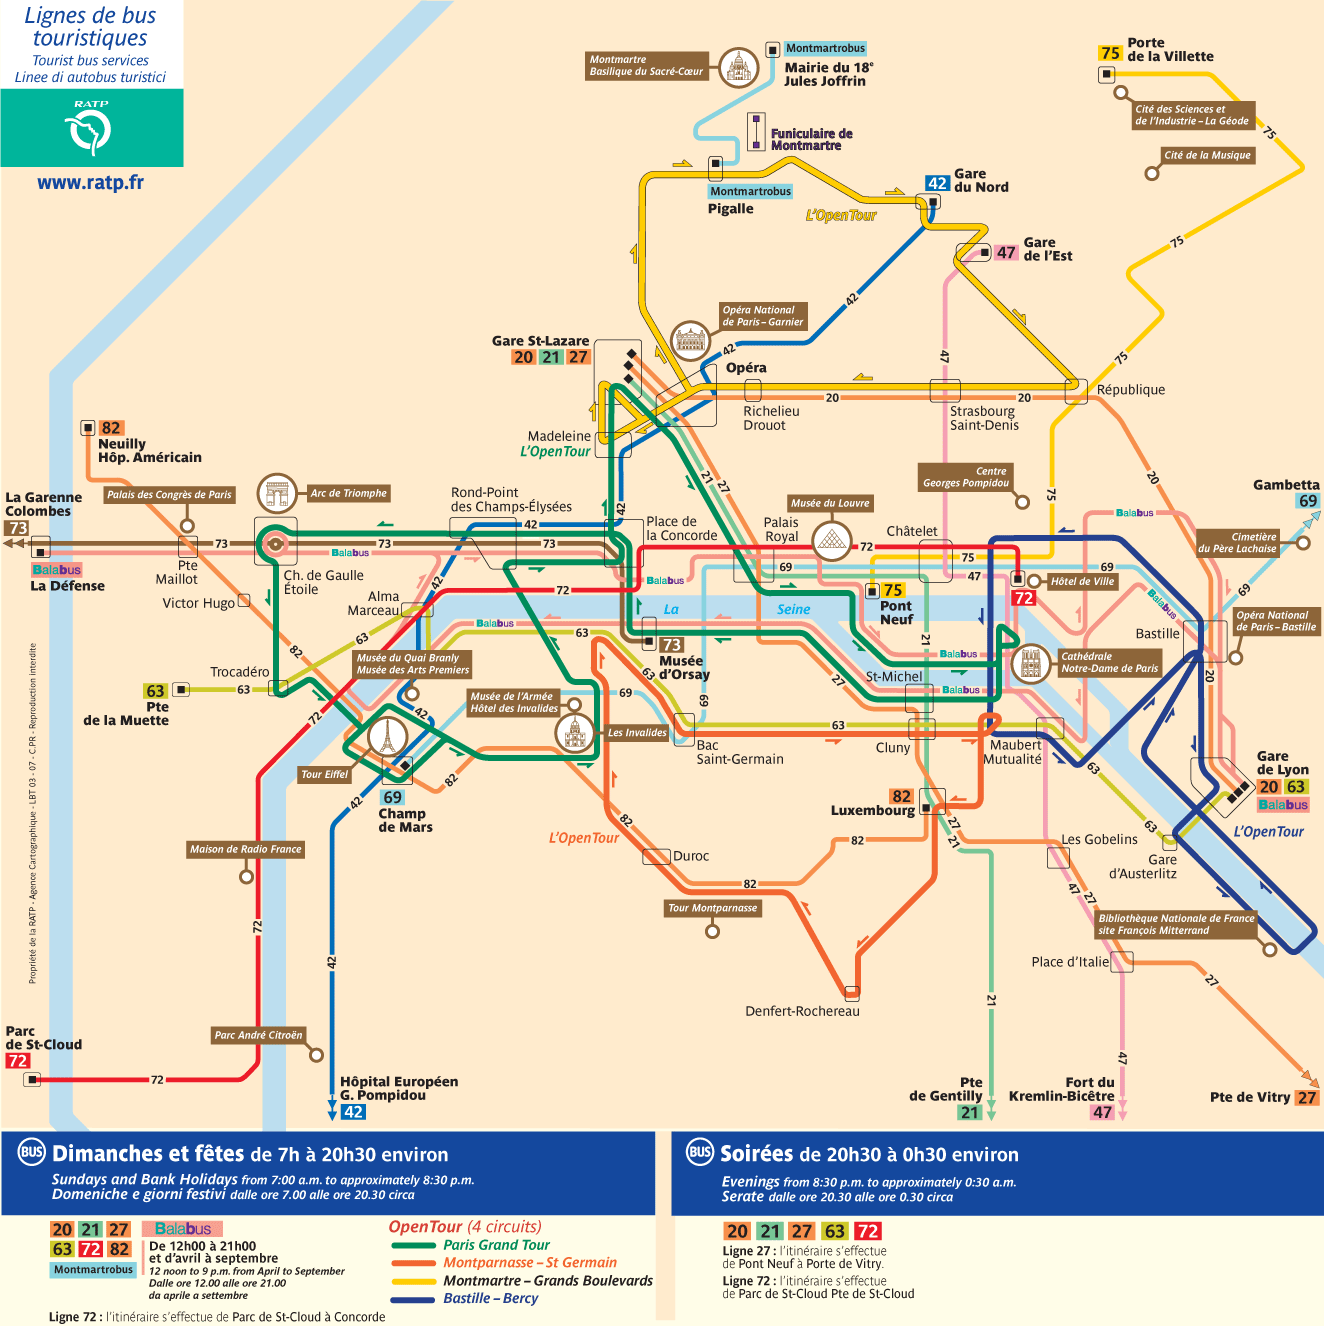 paris tourist bus map mapsofnet map